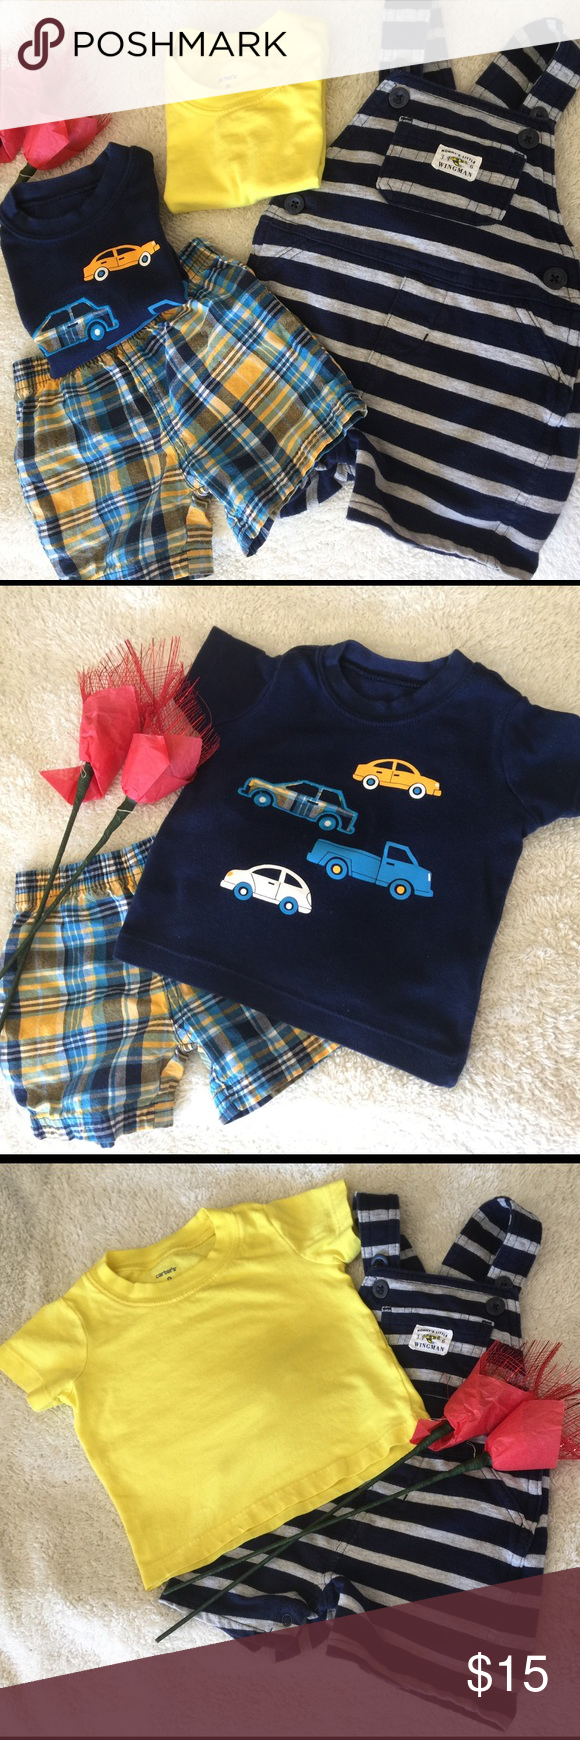 Bundle Of Carters Navy Blue Shirts And Yellow Jumper Carter Love